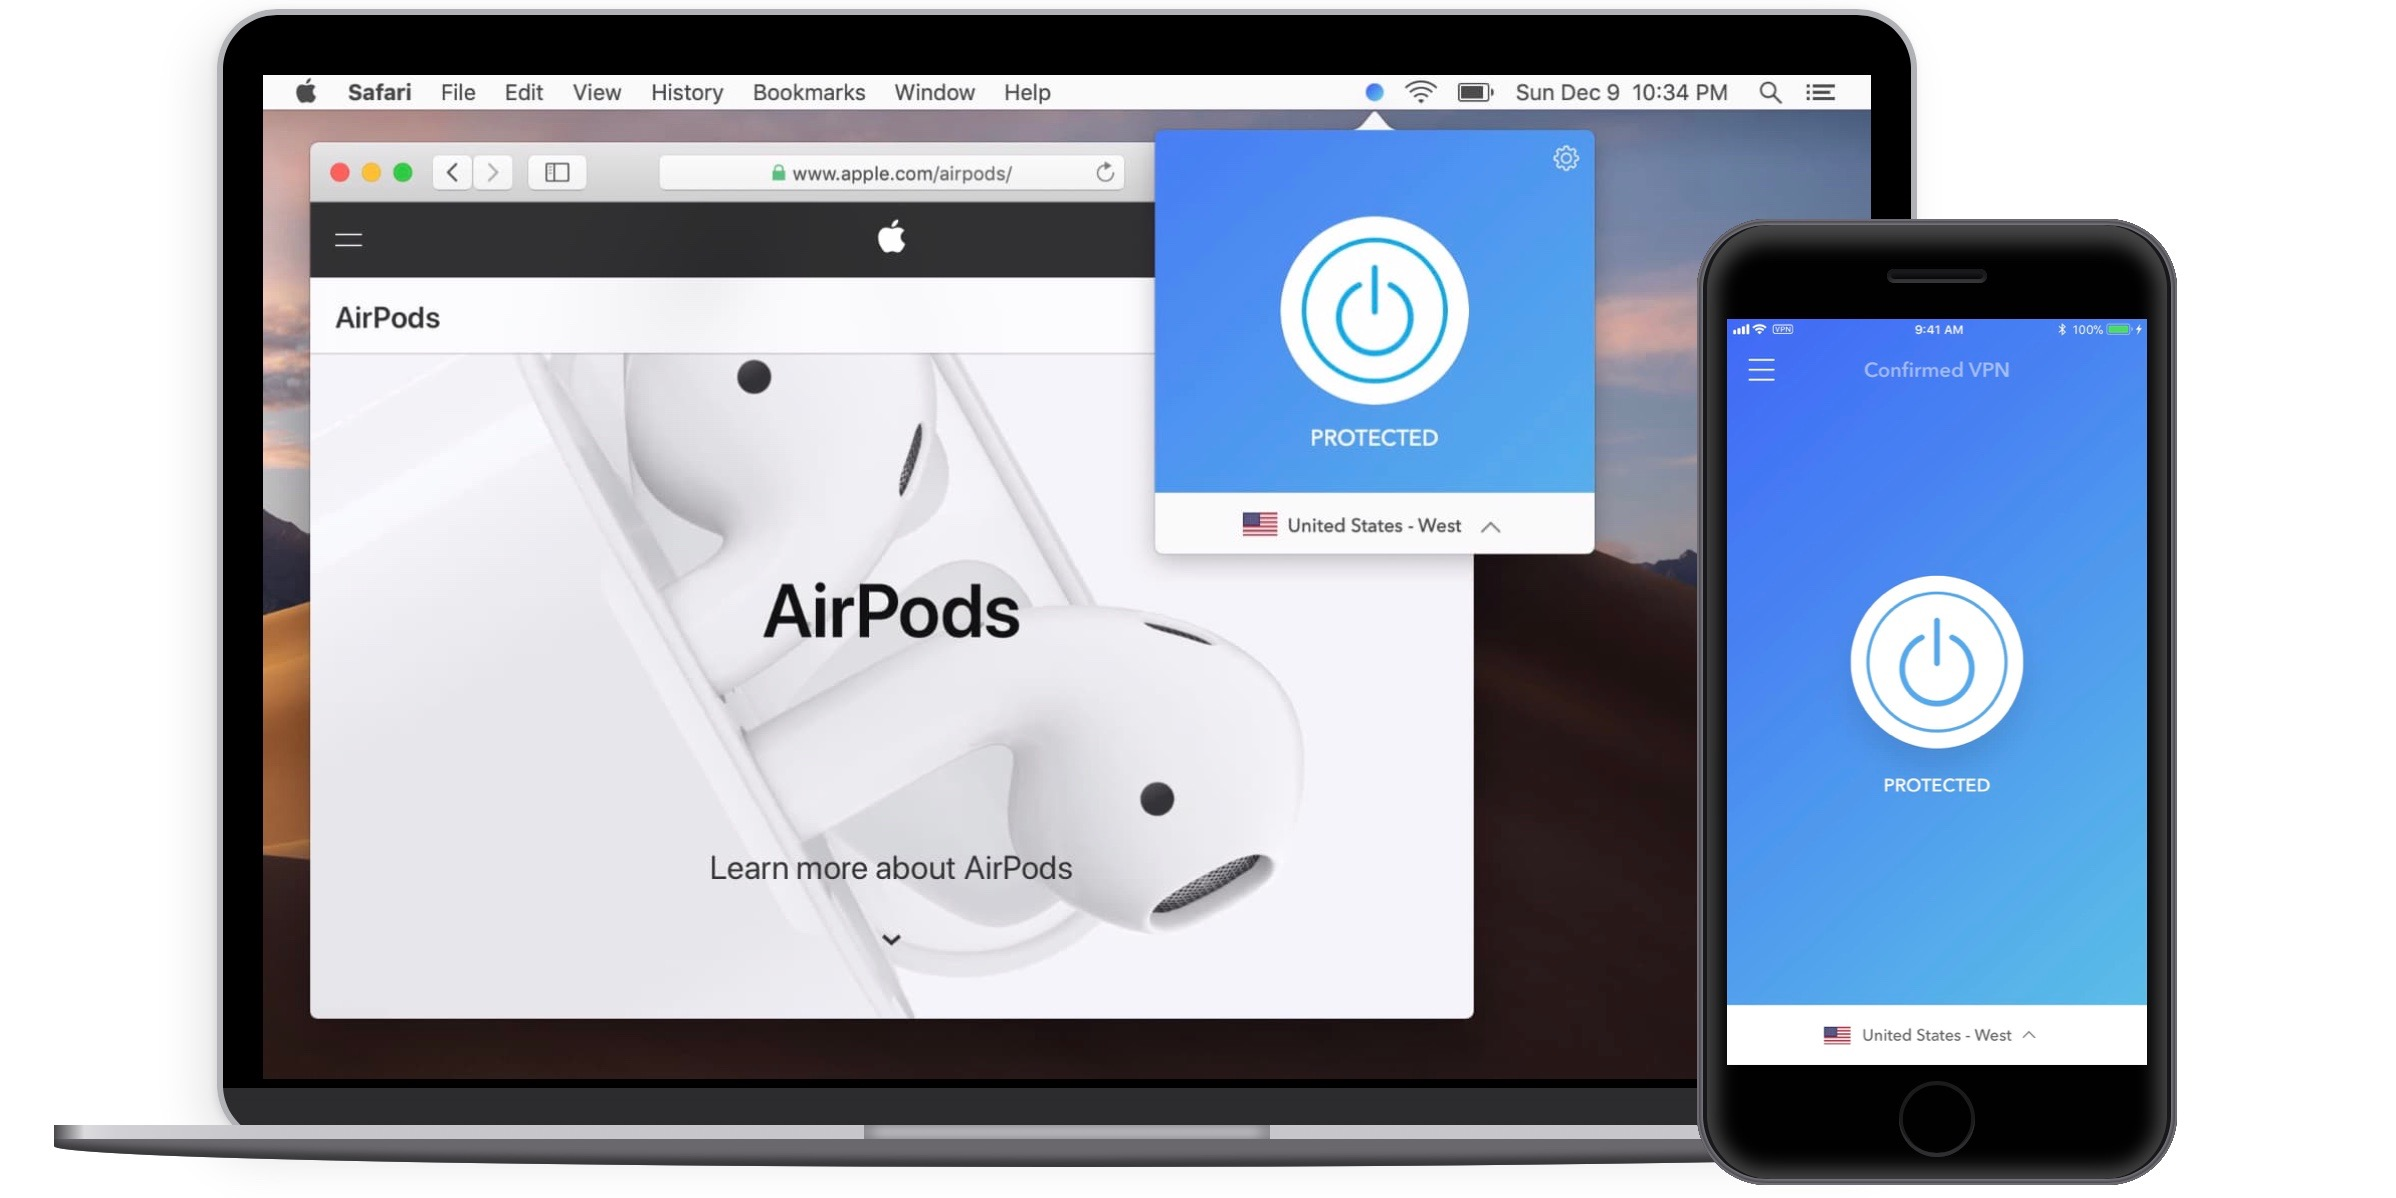 'Confirmed VPN' iOS/macOS update makes it the first open service with third-party audits, open source code, more